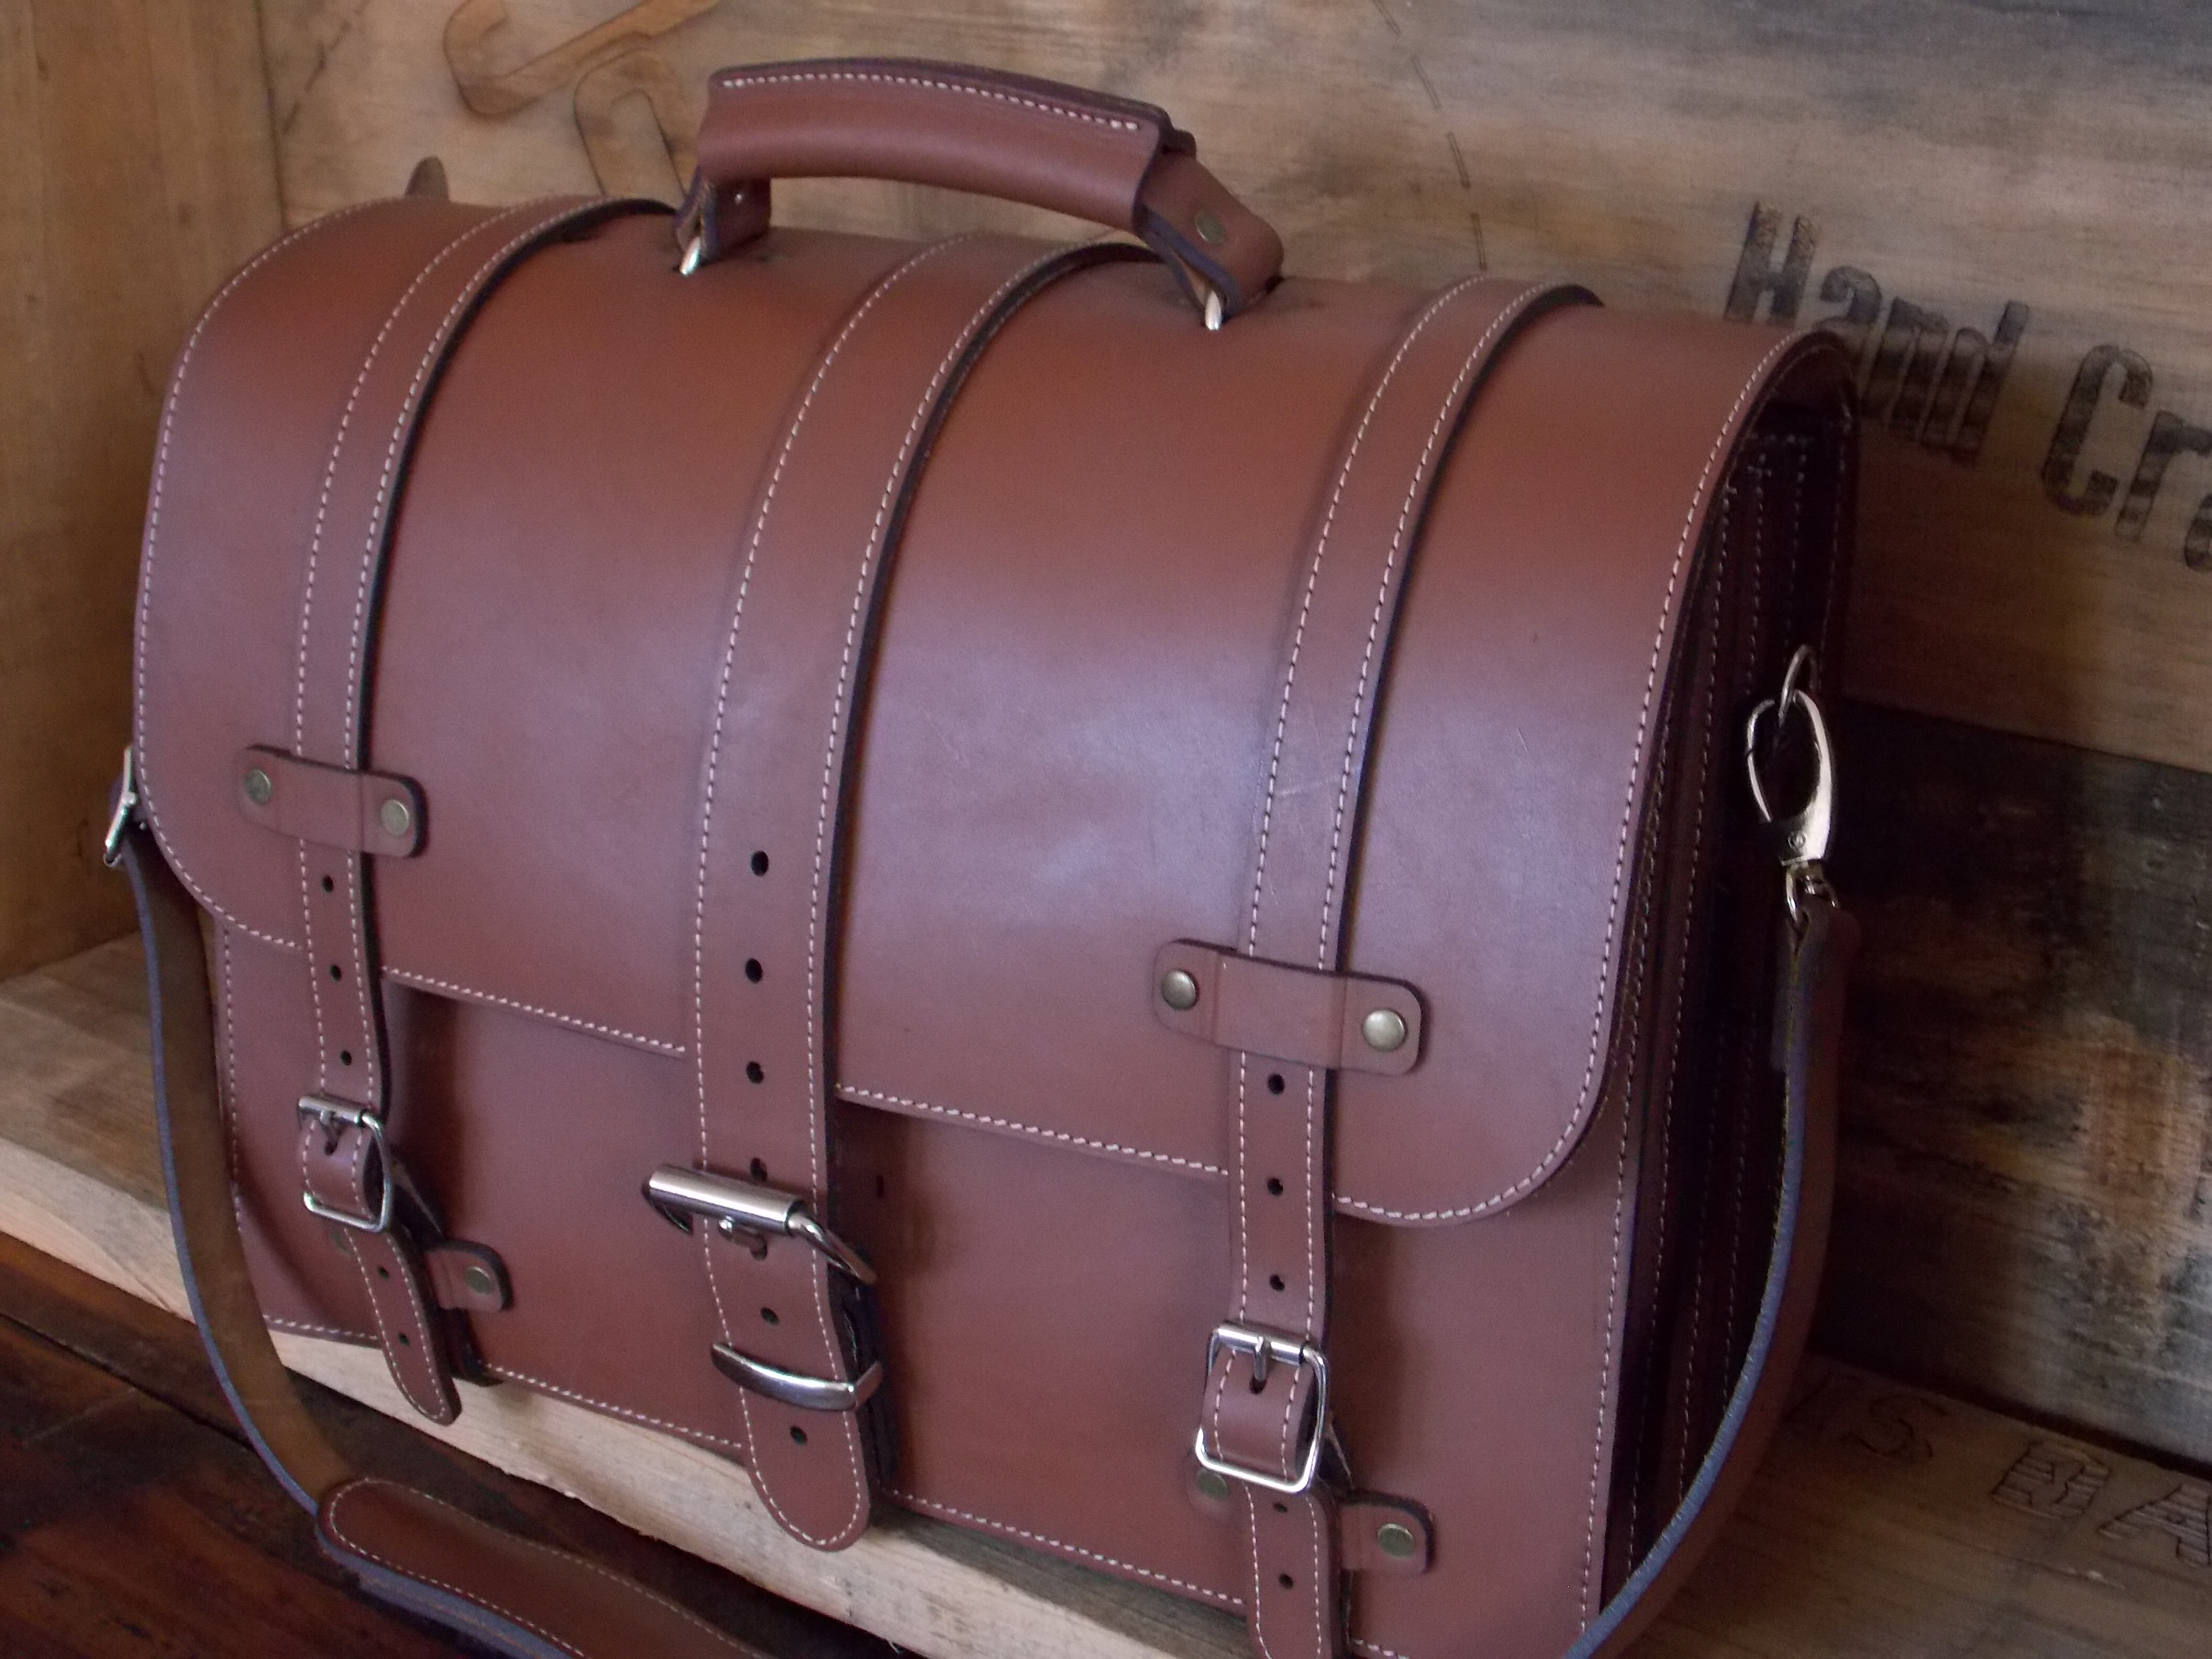 Abernathy & Hale Leather Laptop Bag